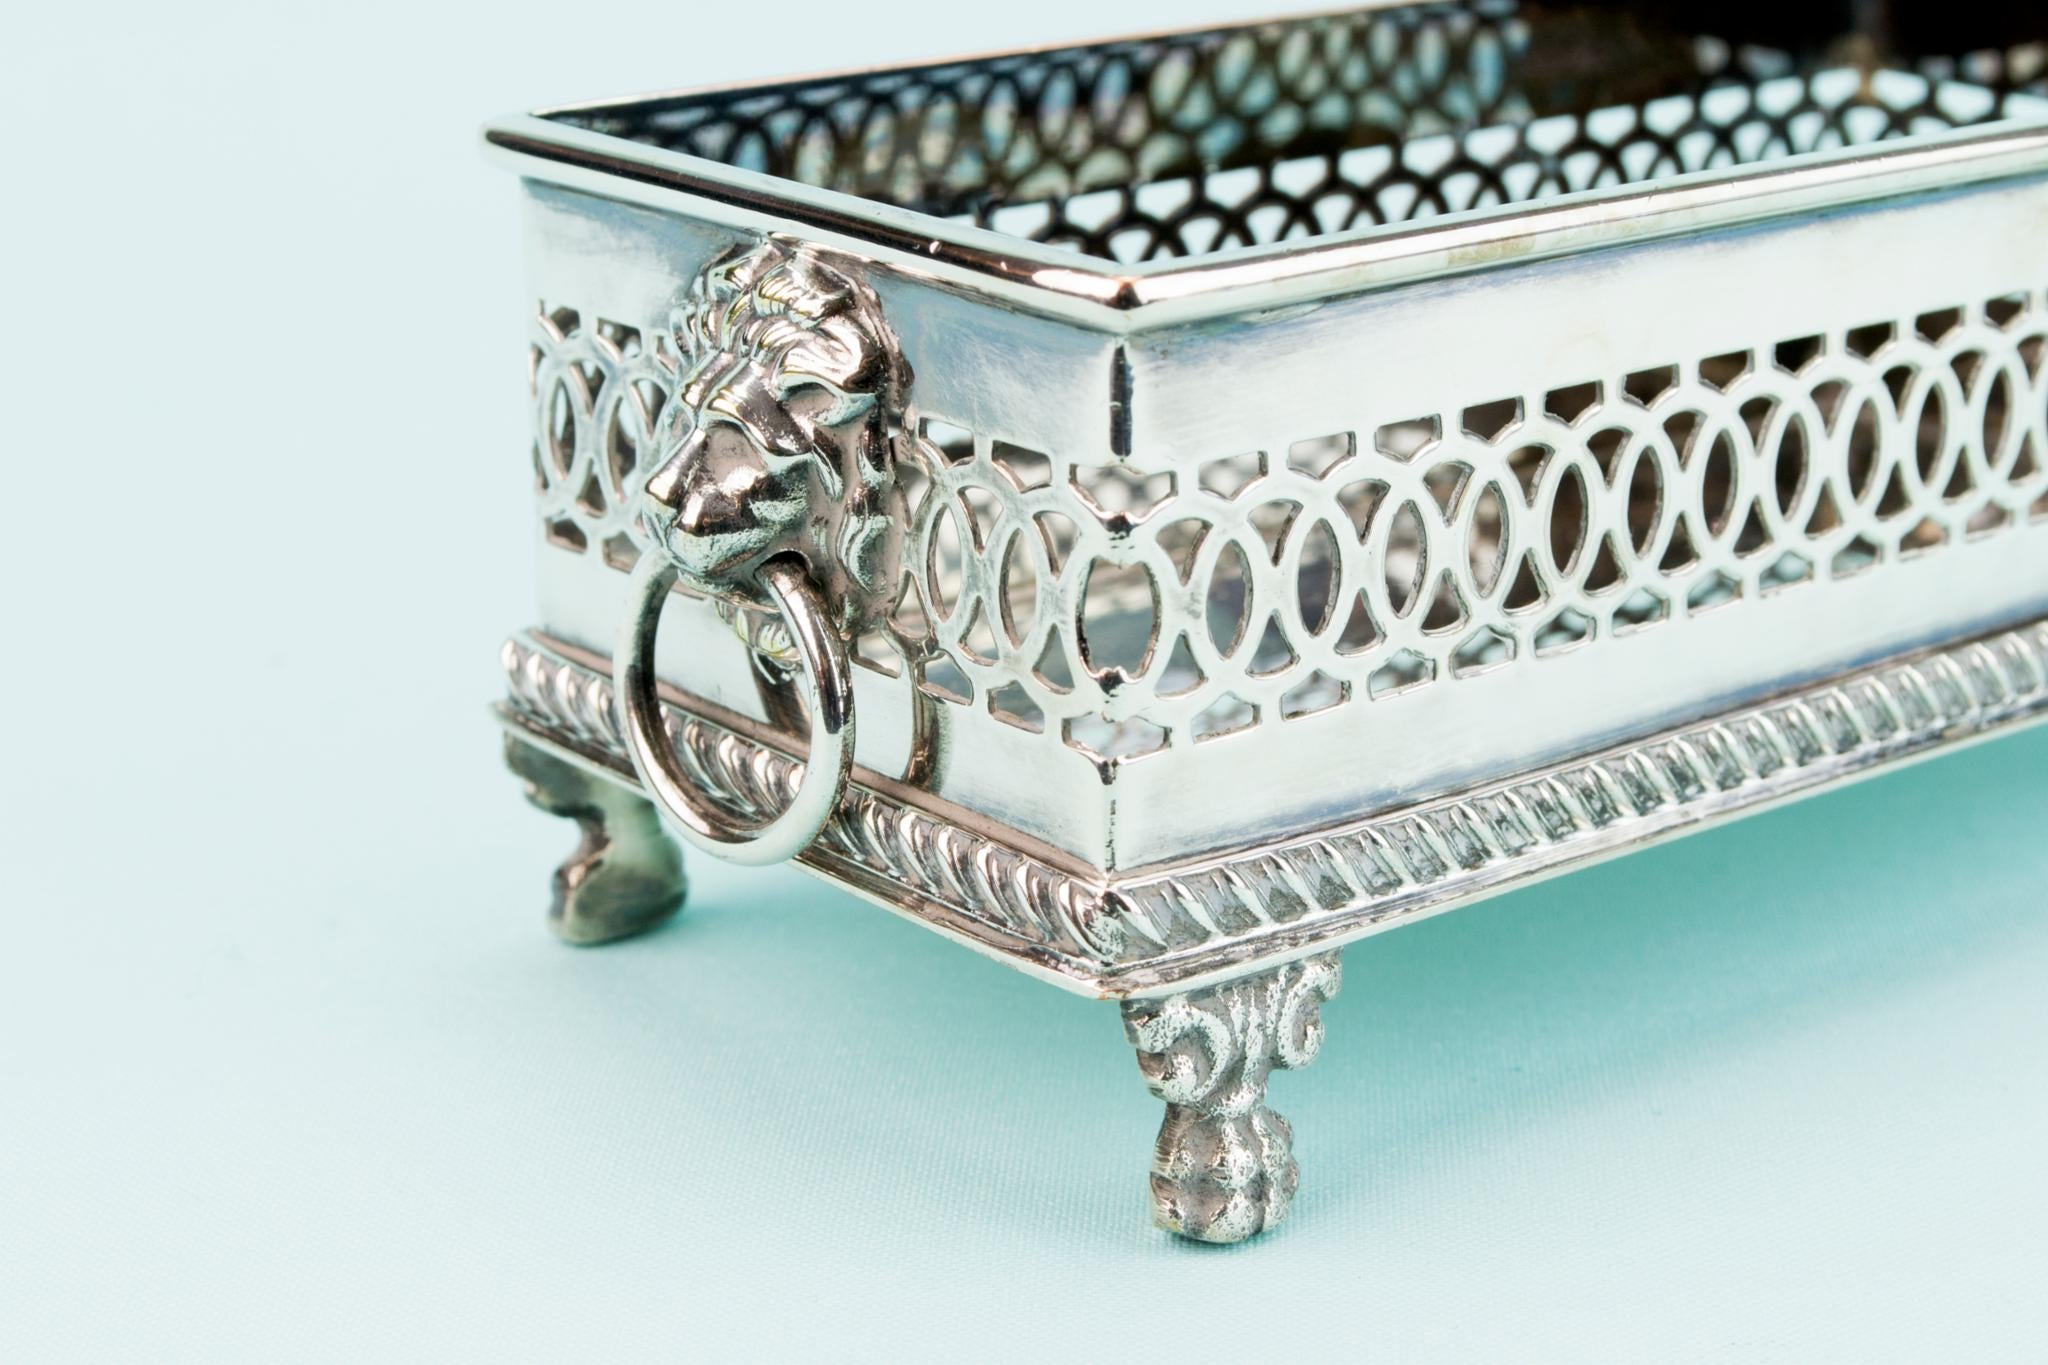 Silver Plated Small Decorative Bowl, English Early 1900s